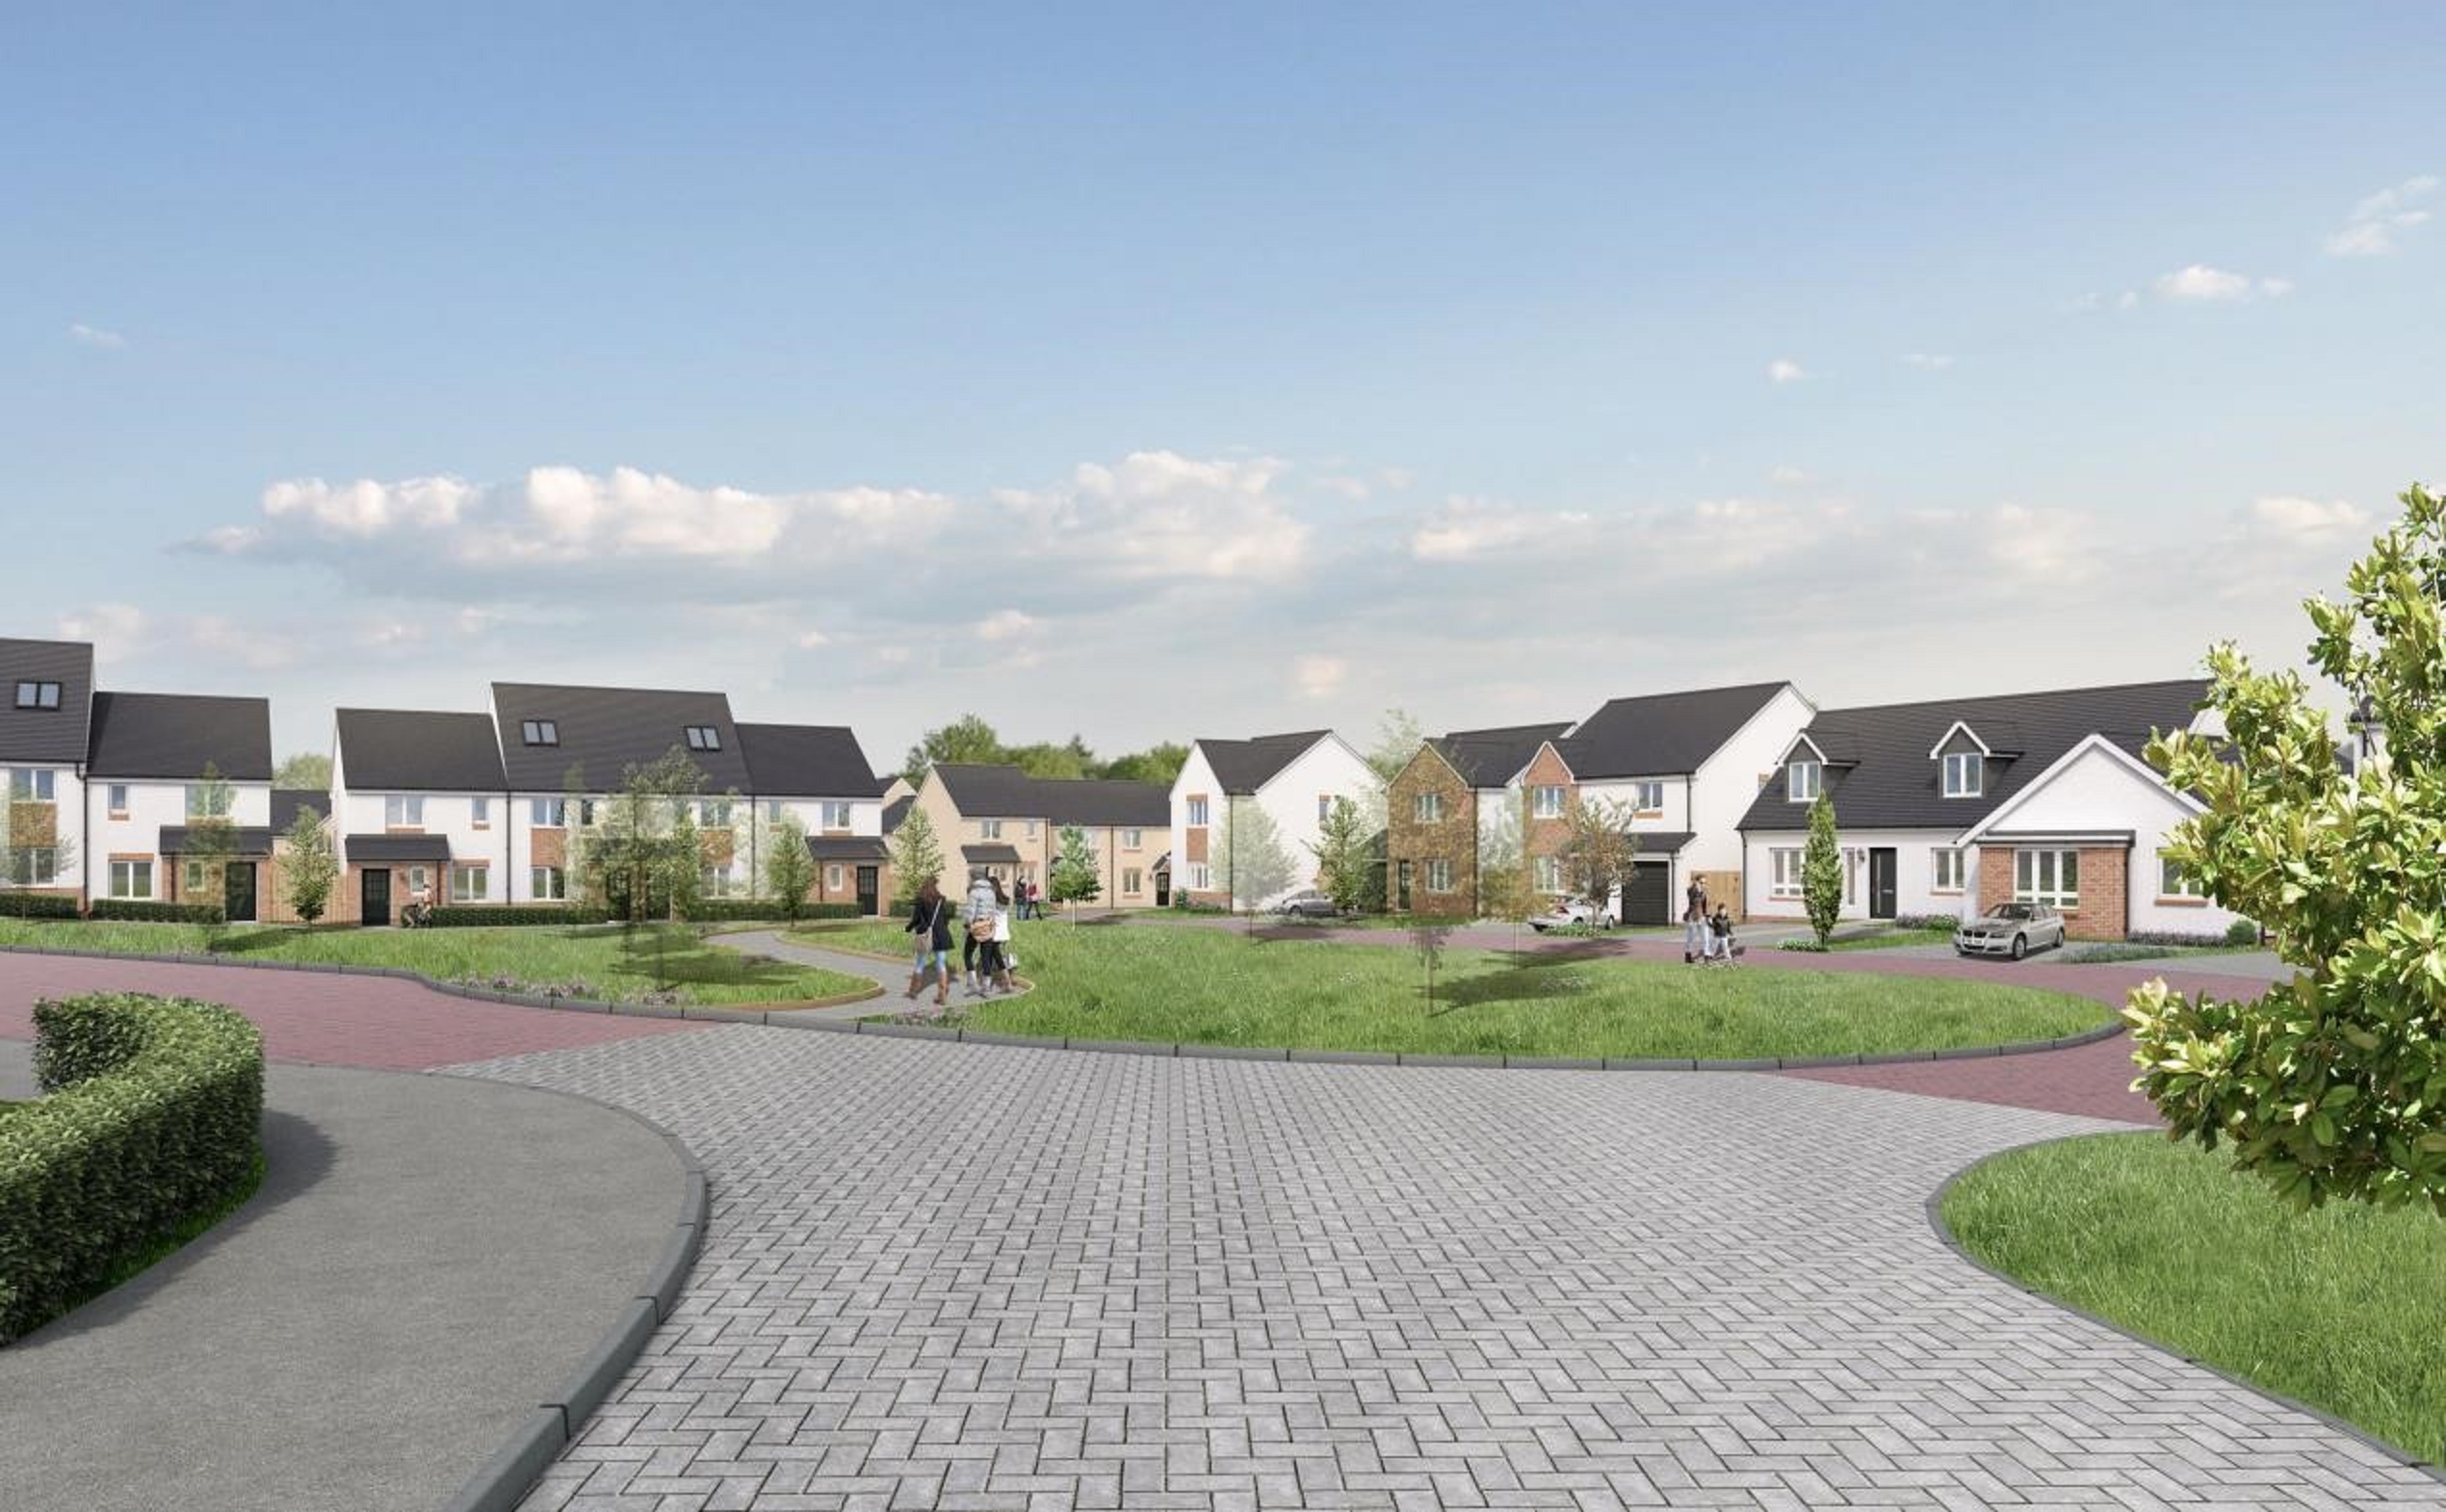 An artist's impression of how the development will look, with work expected to start in April.